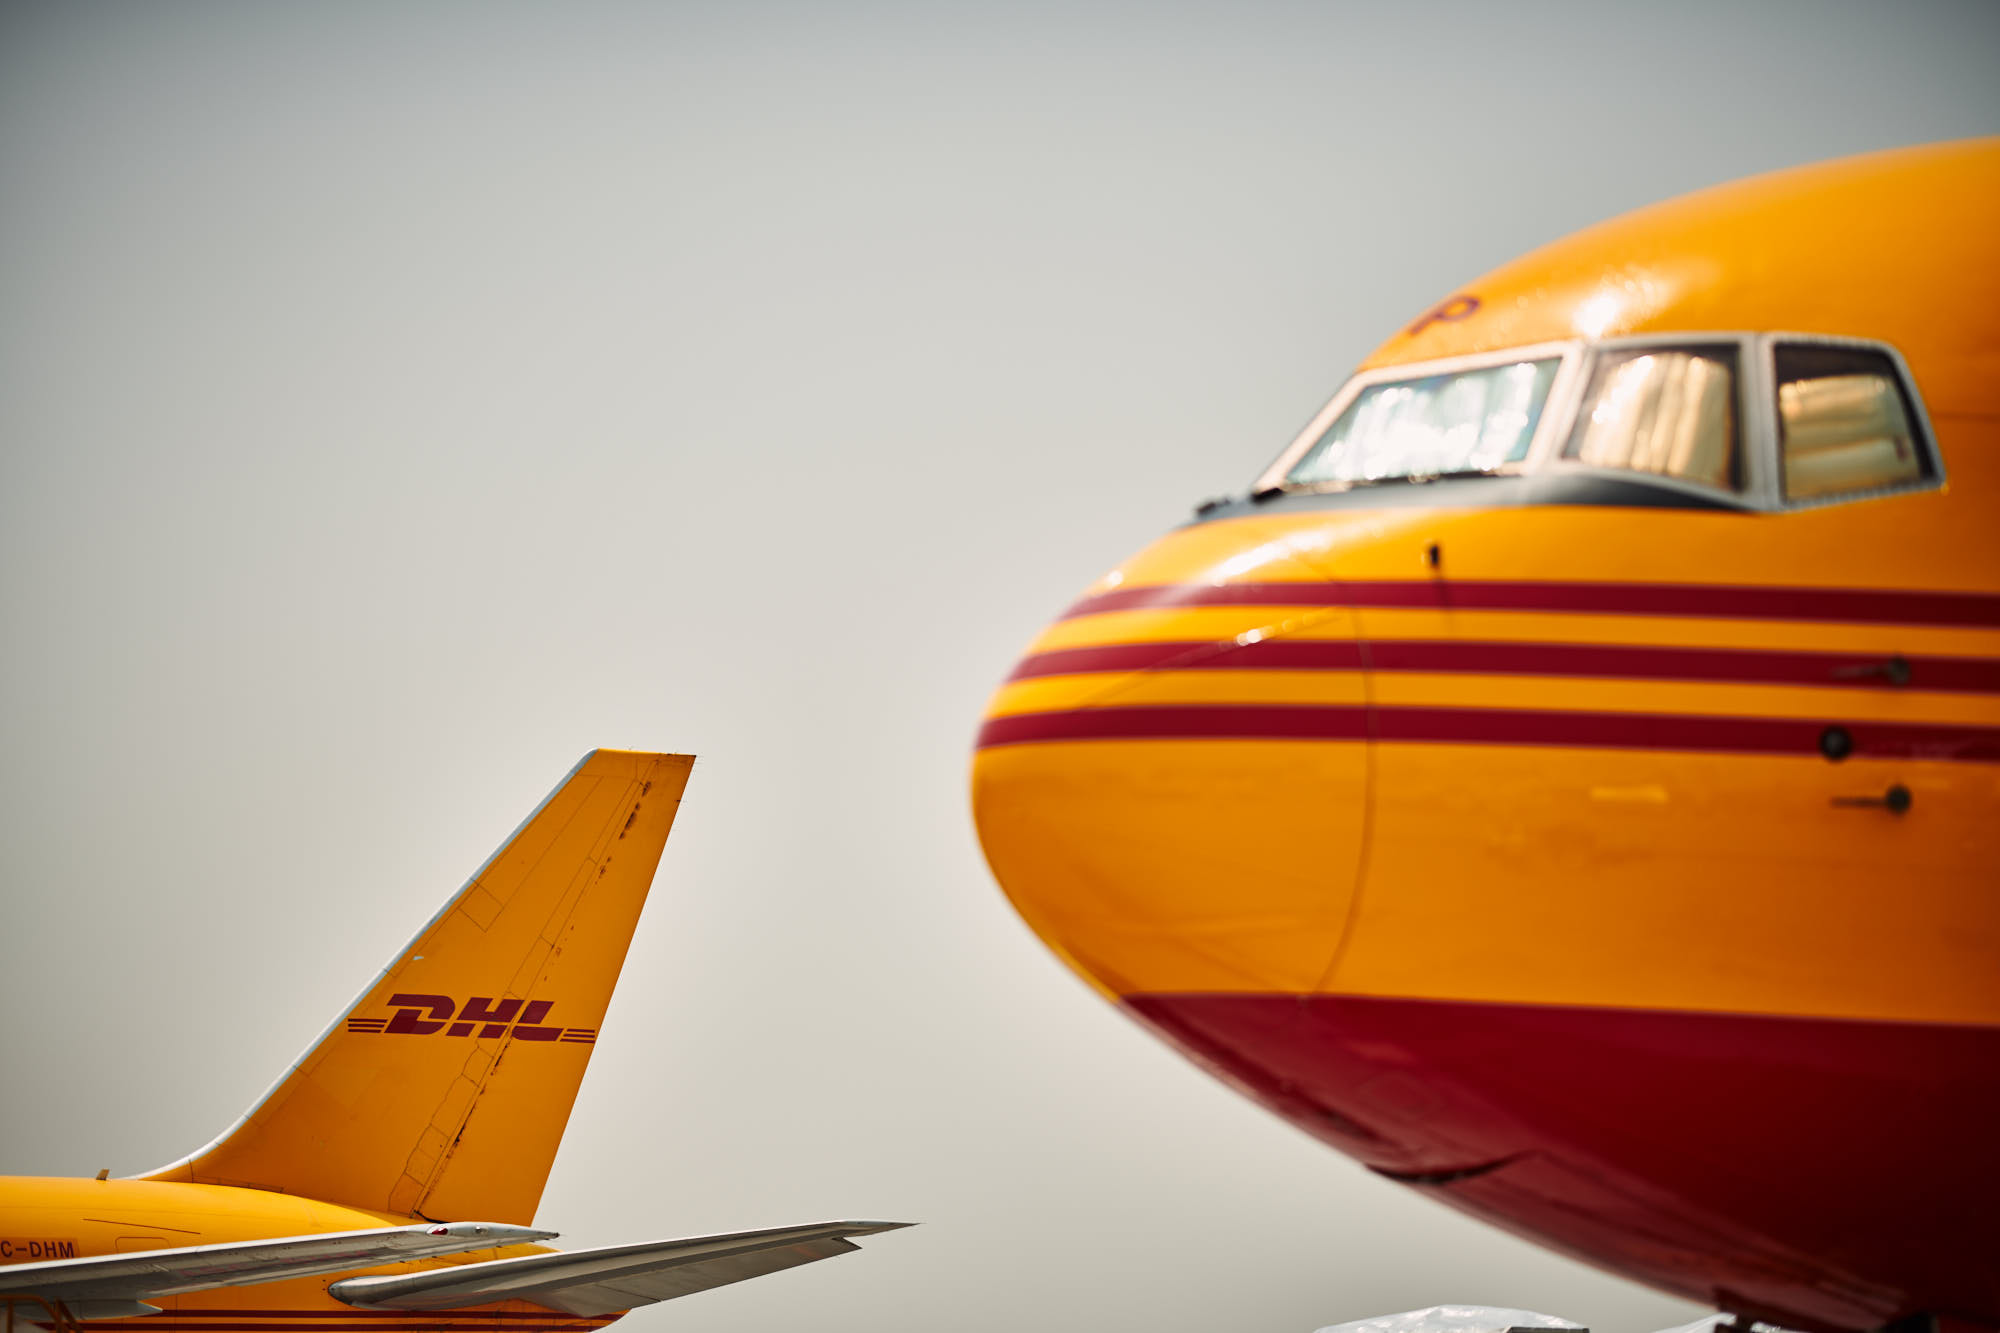 global campaign advertising photography shot in a cinematic reportage style for DHL by yorkshire and london award winning photographer matthewlloyd 4930.JPG